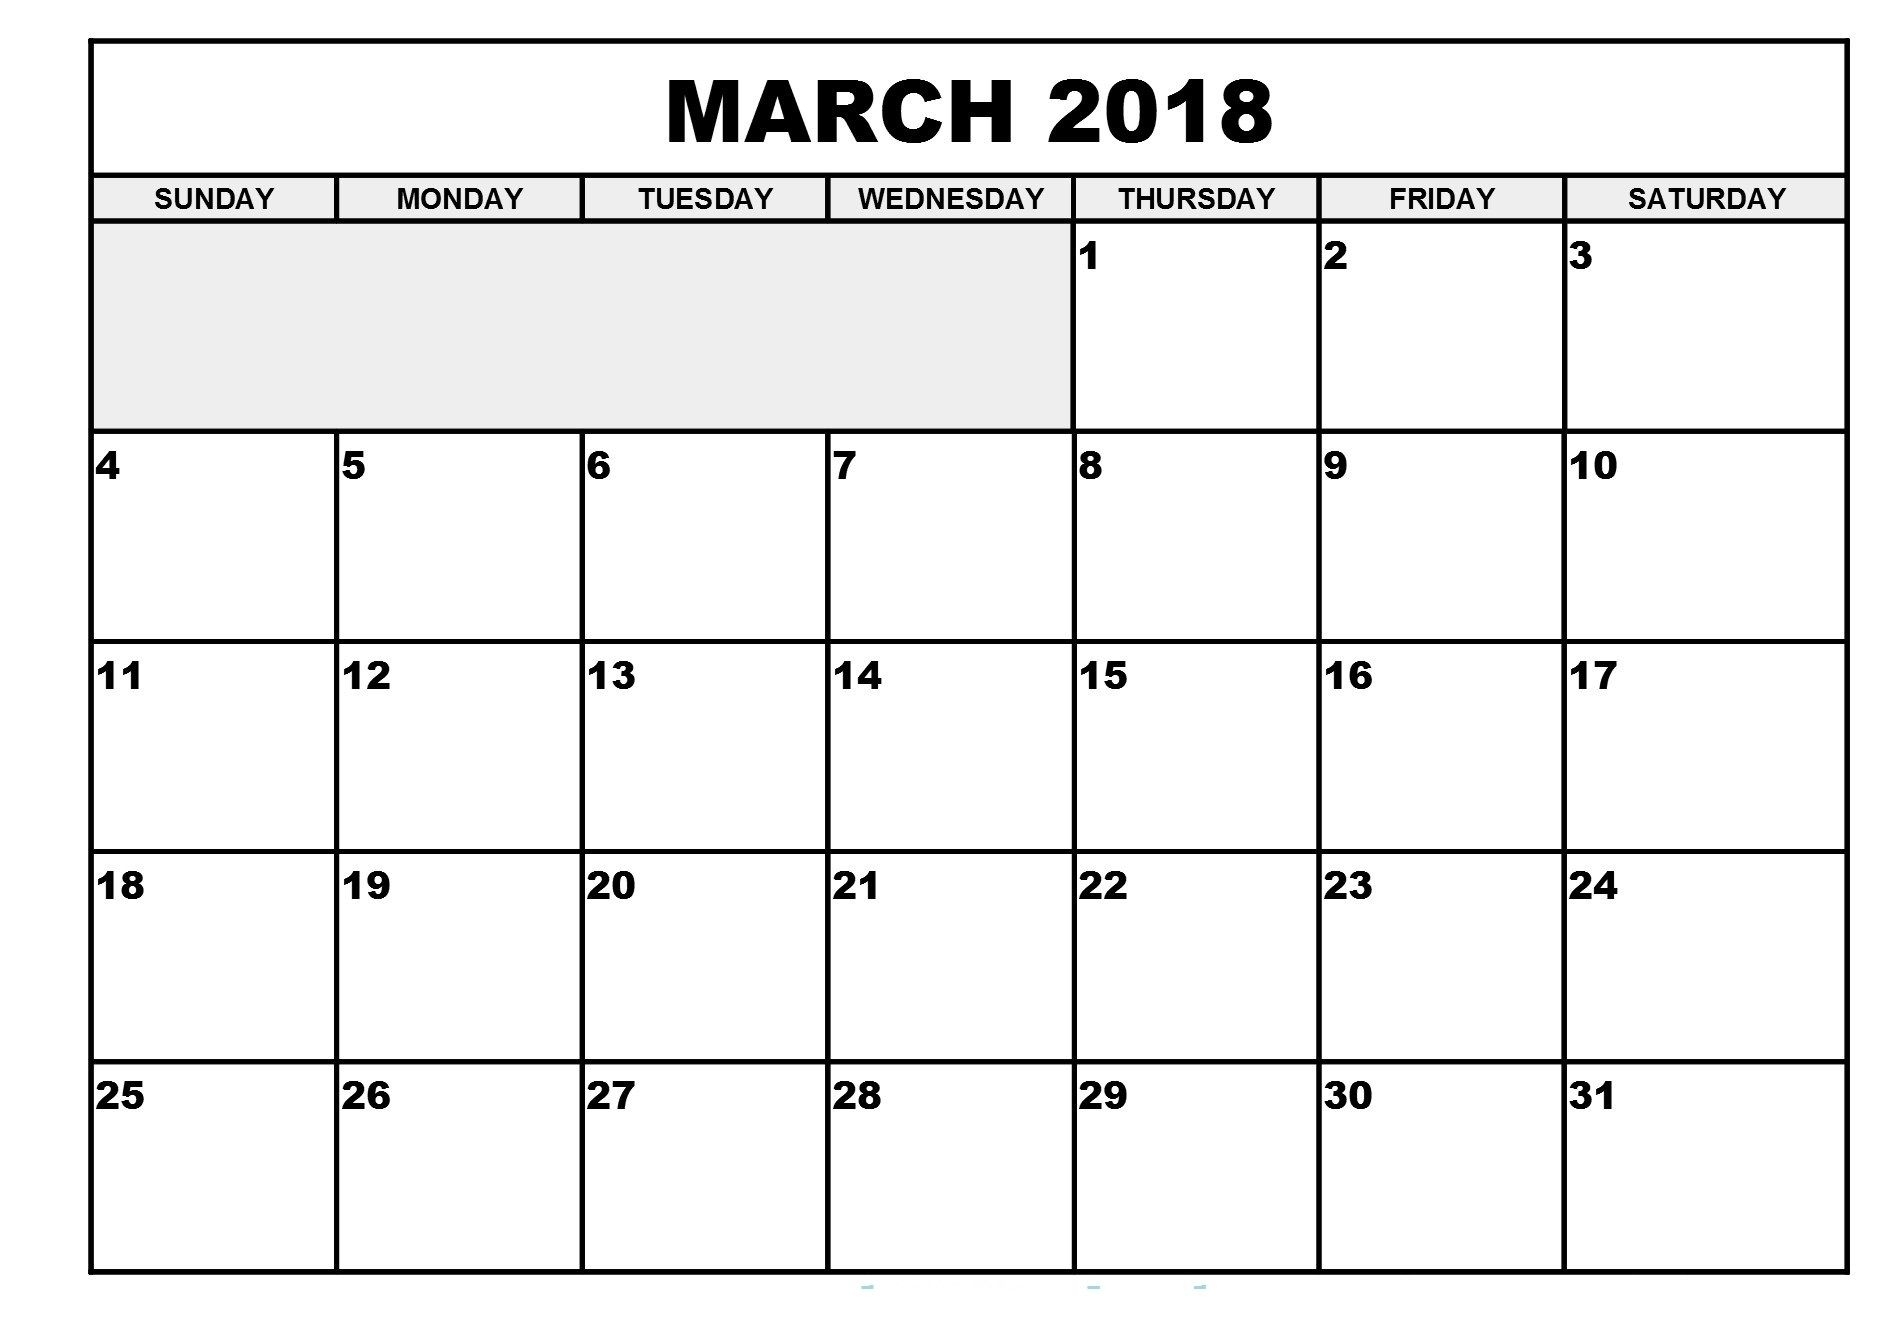 Print Calendar Without Download In 2020 | Print Calendar